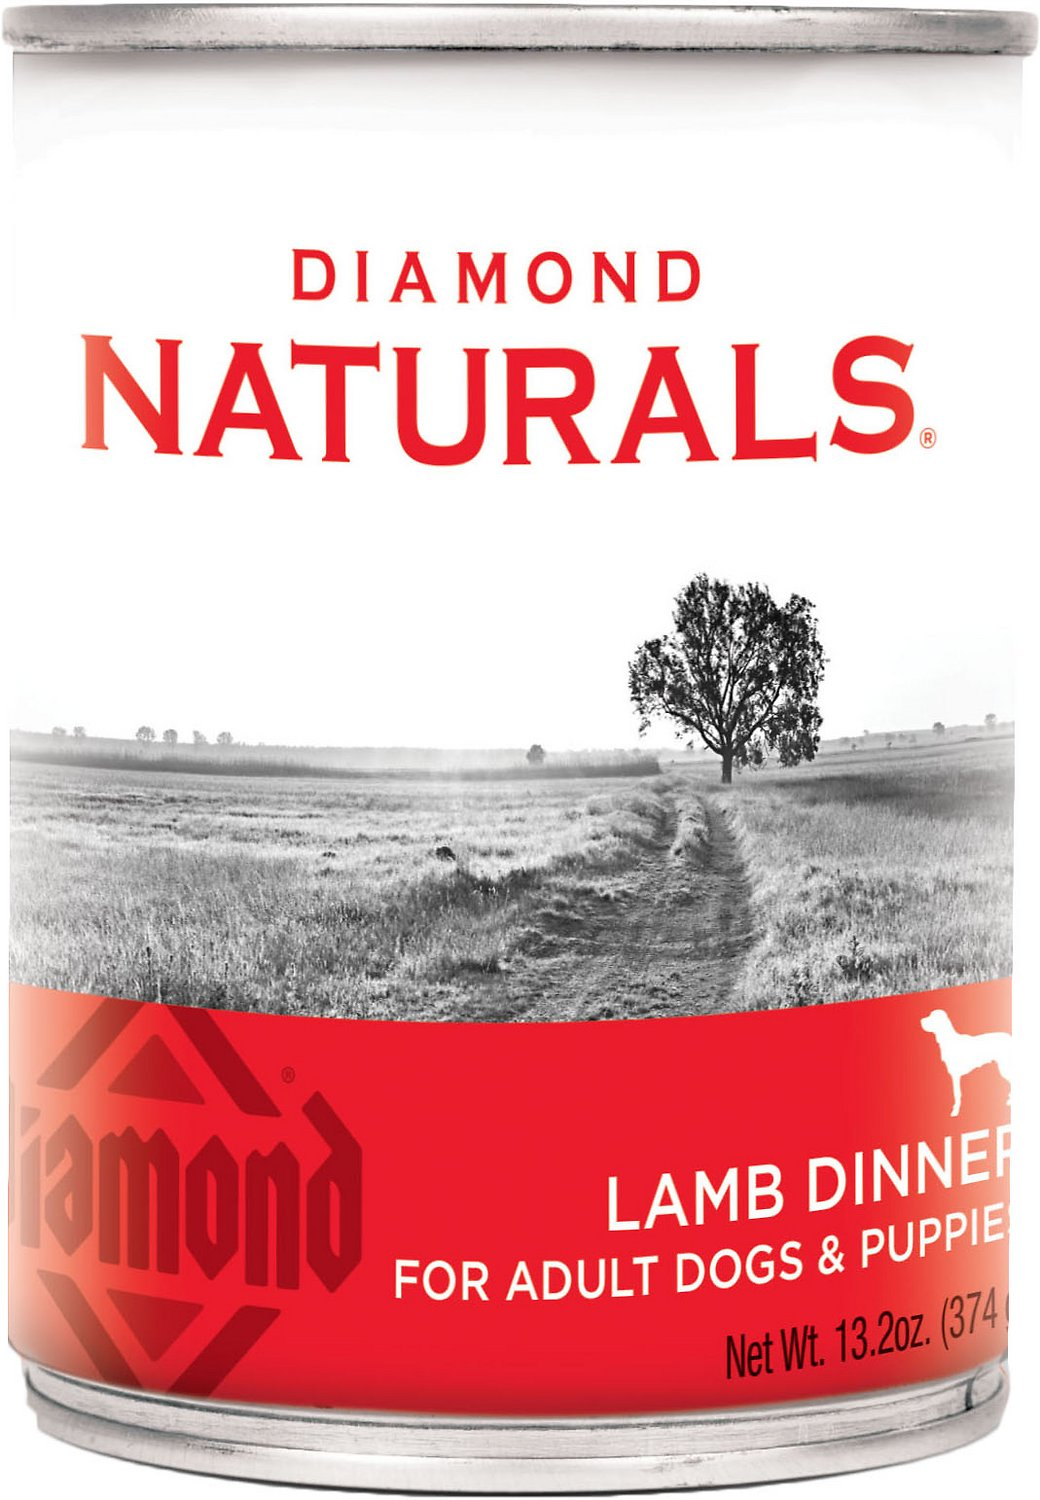 Diamond Naturals Lamb Dinner Adult & Puppy Canned Dog Food, 13.2-oz